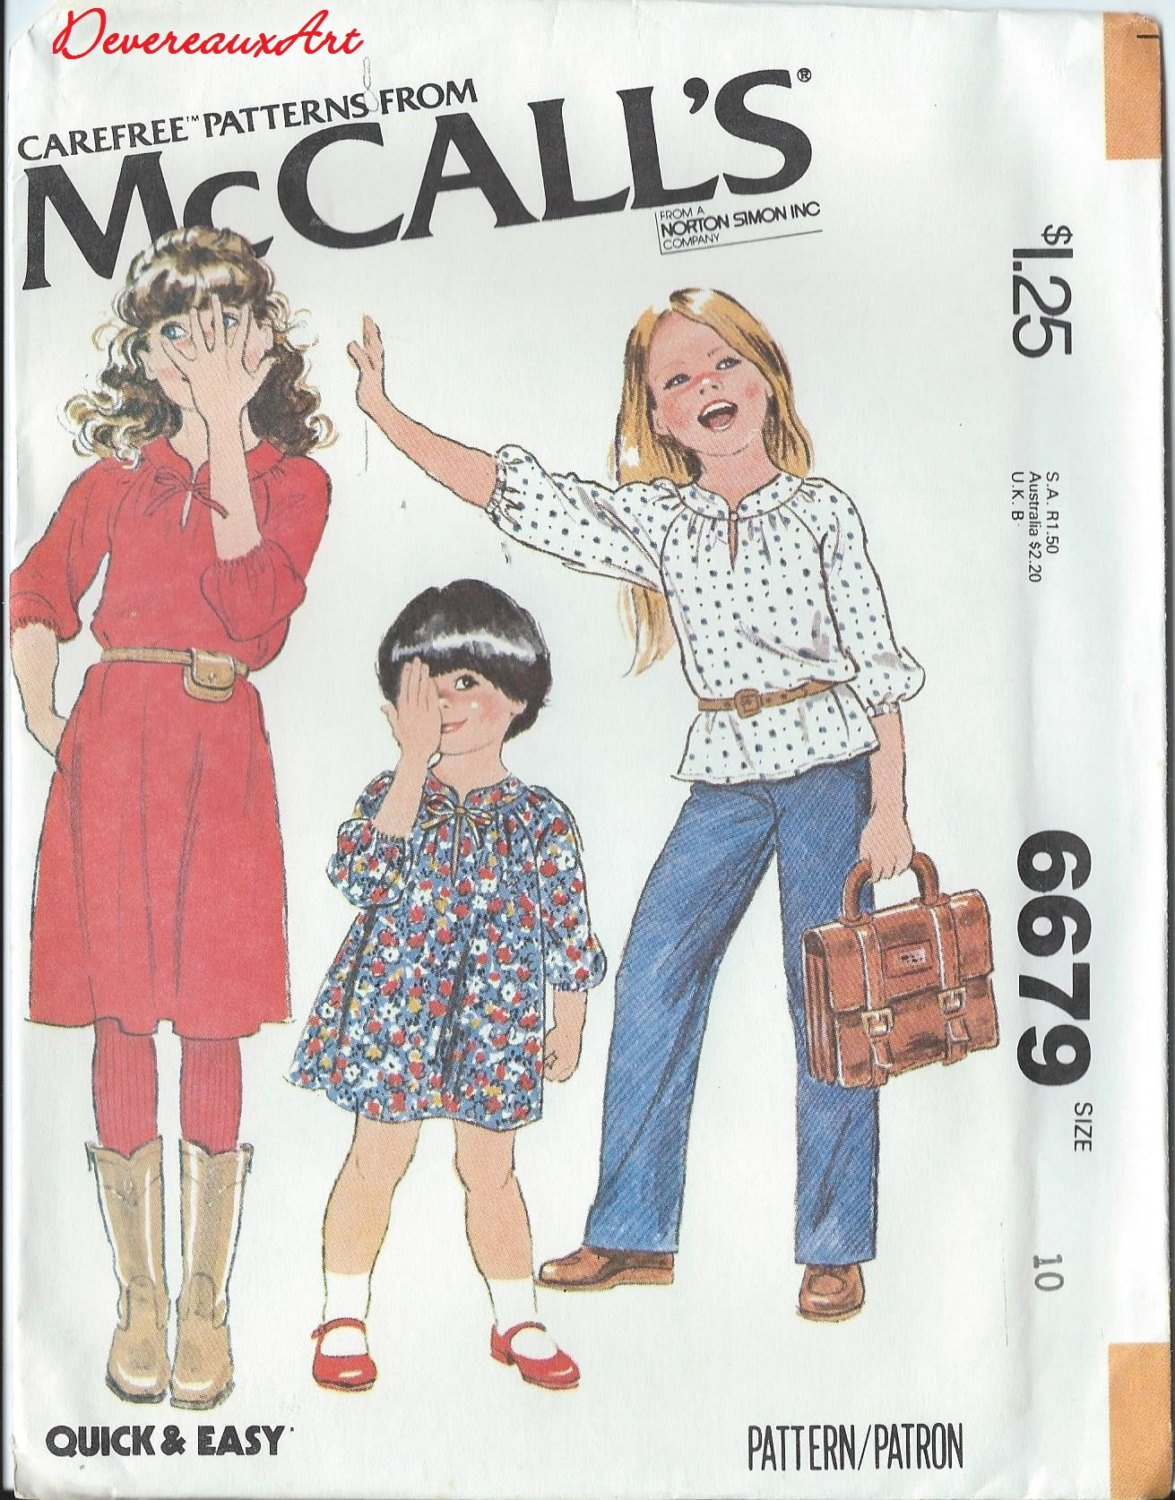 """1979 - McCall's """"Carefree"""" Pattern 6679 - UNCUT - Size 10 - Children's and Girl's Dress or Top"""